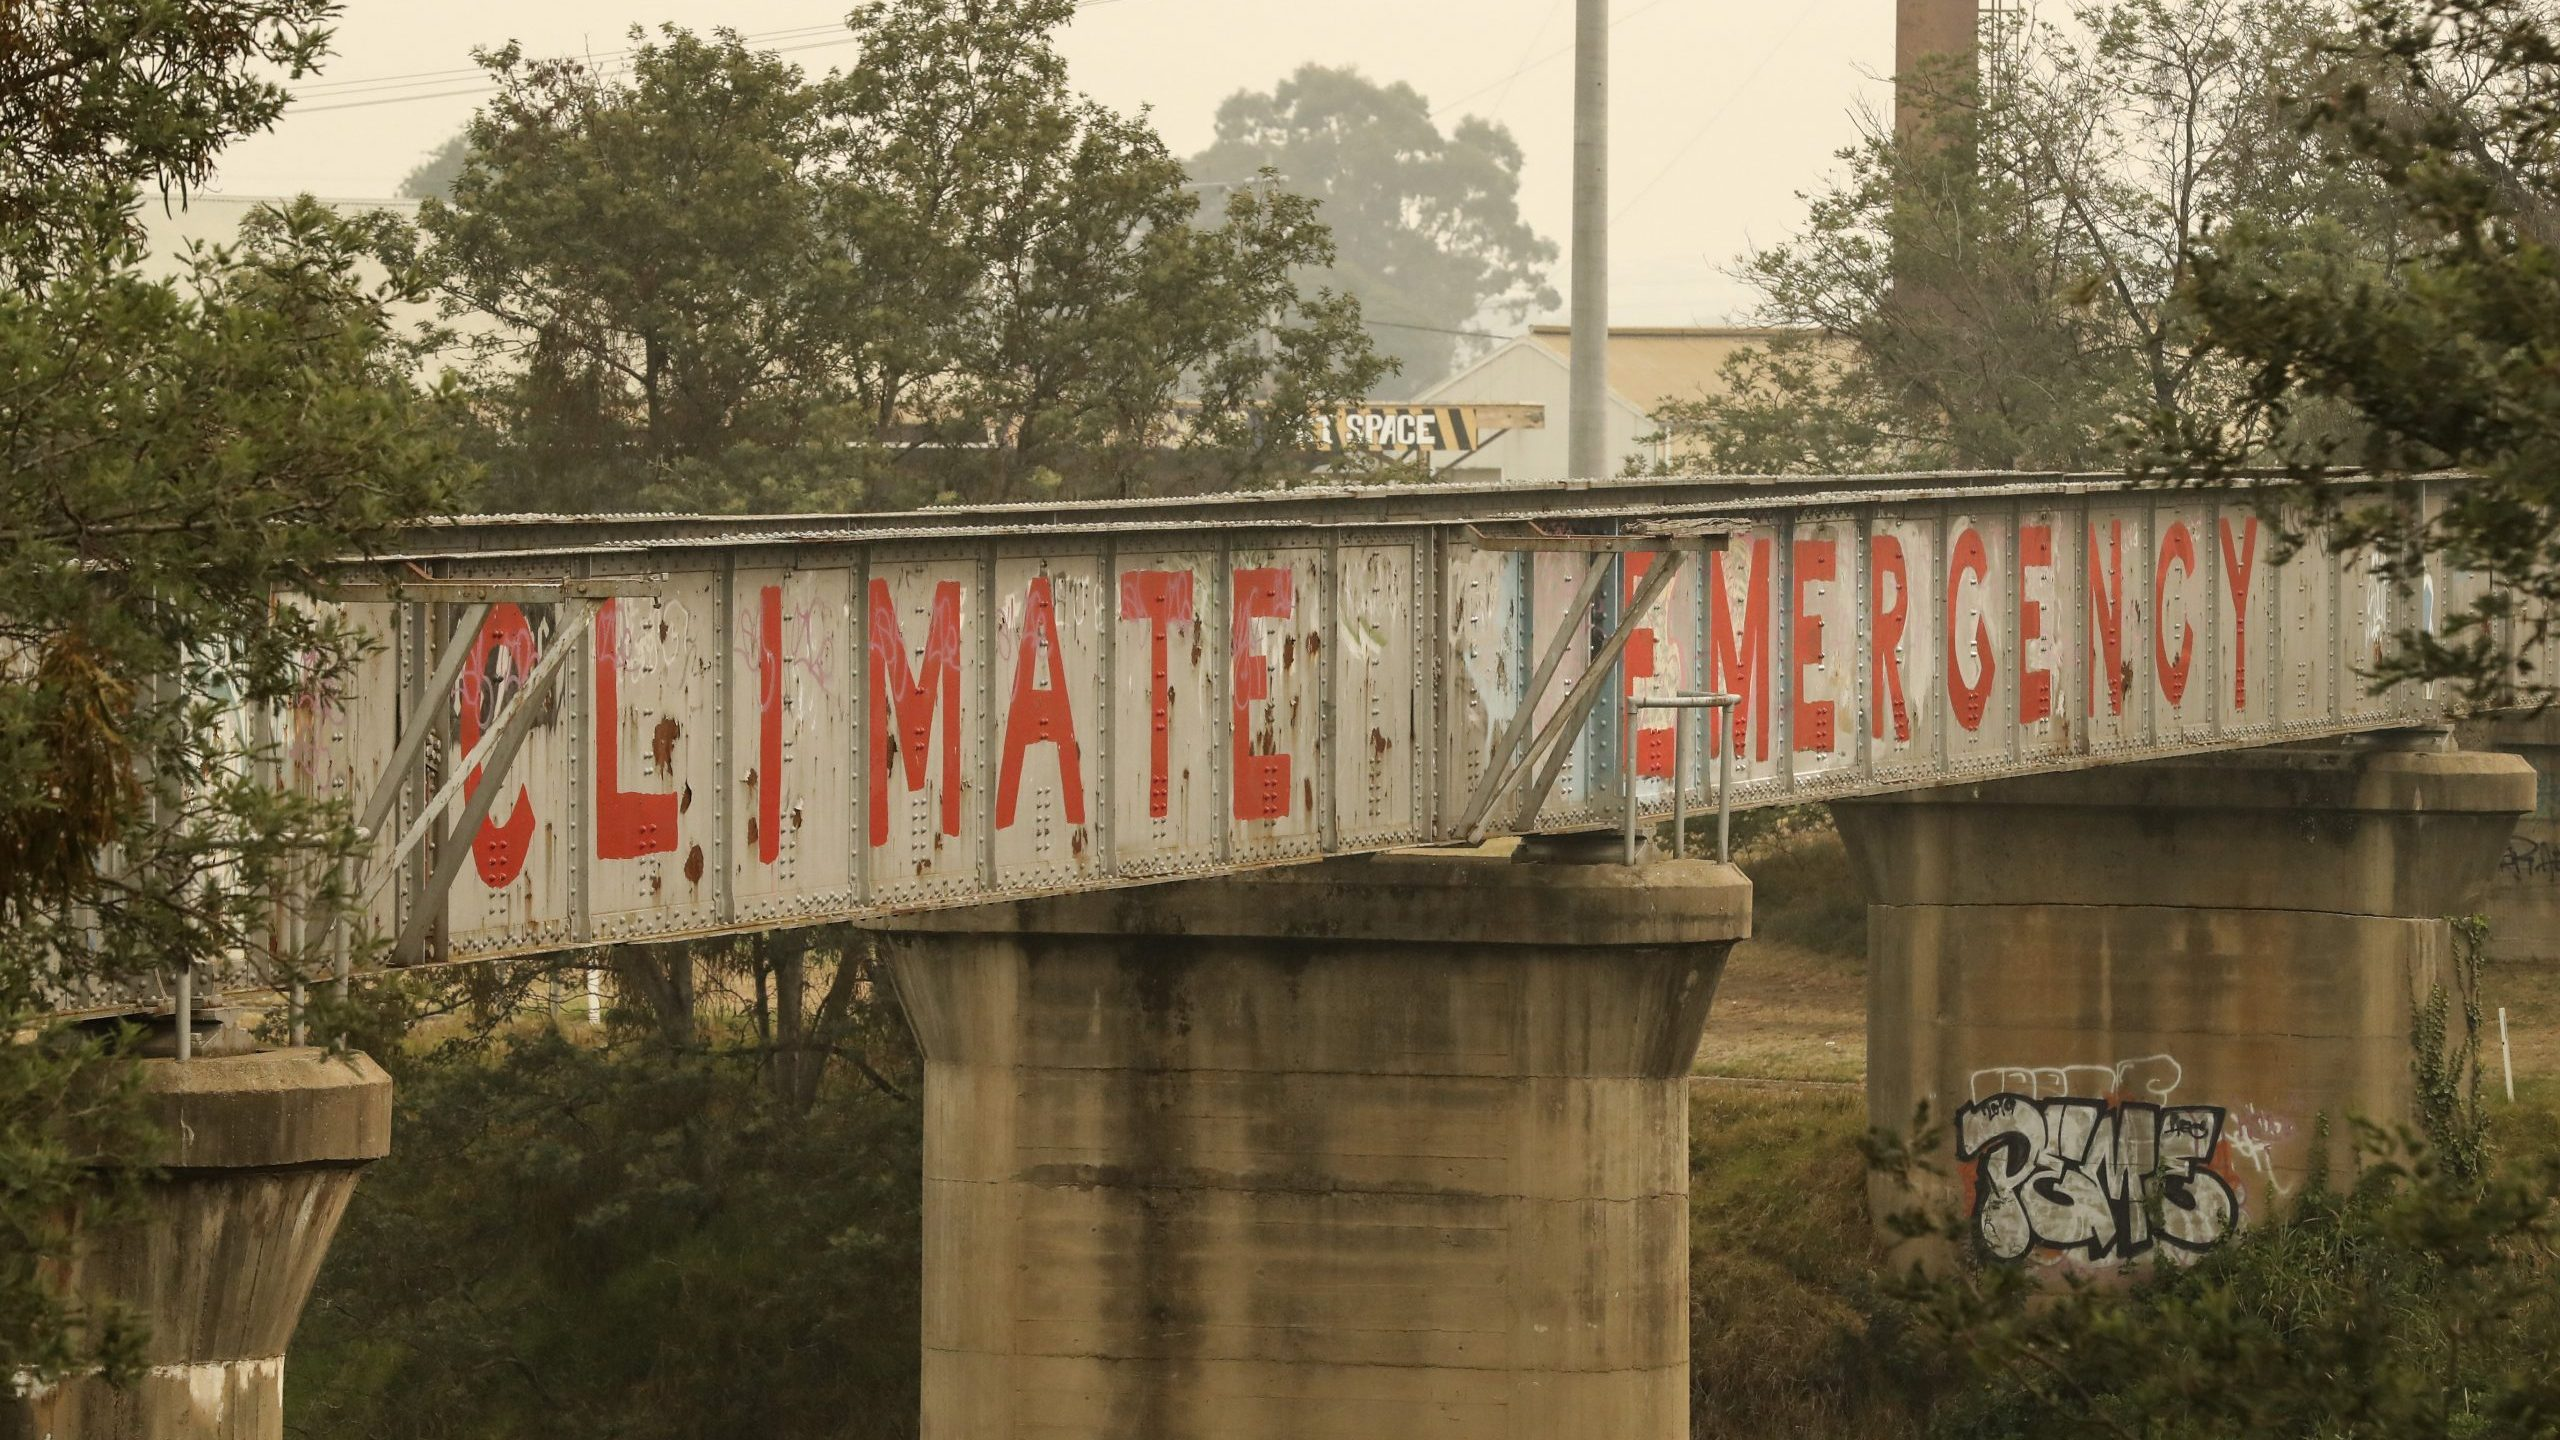 Graffiti is seen on a bridge on Jan. 3, 2020, in Bairnsdale, Australia, as wildfire evacuations begin for thousands of stranded people nearby. (Credit: Darrian Traynor/Getty Images)